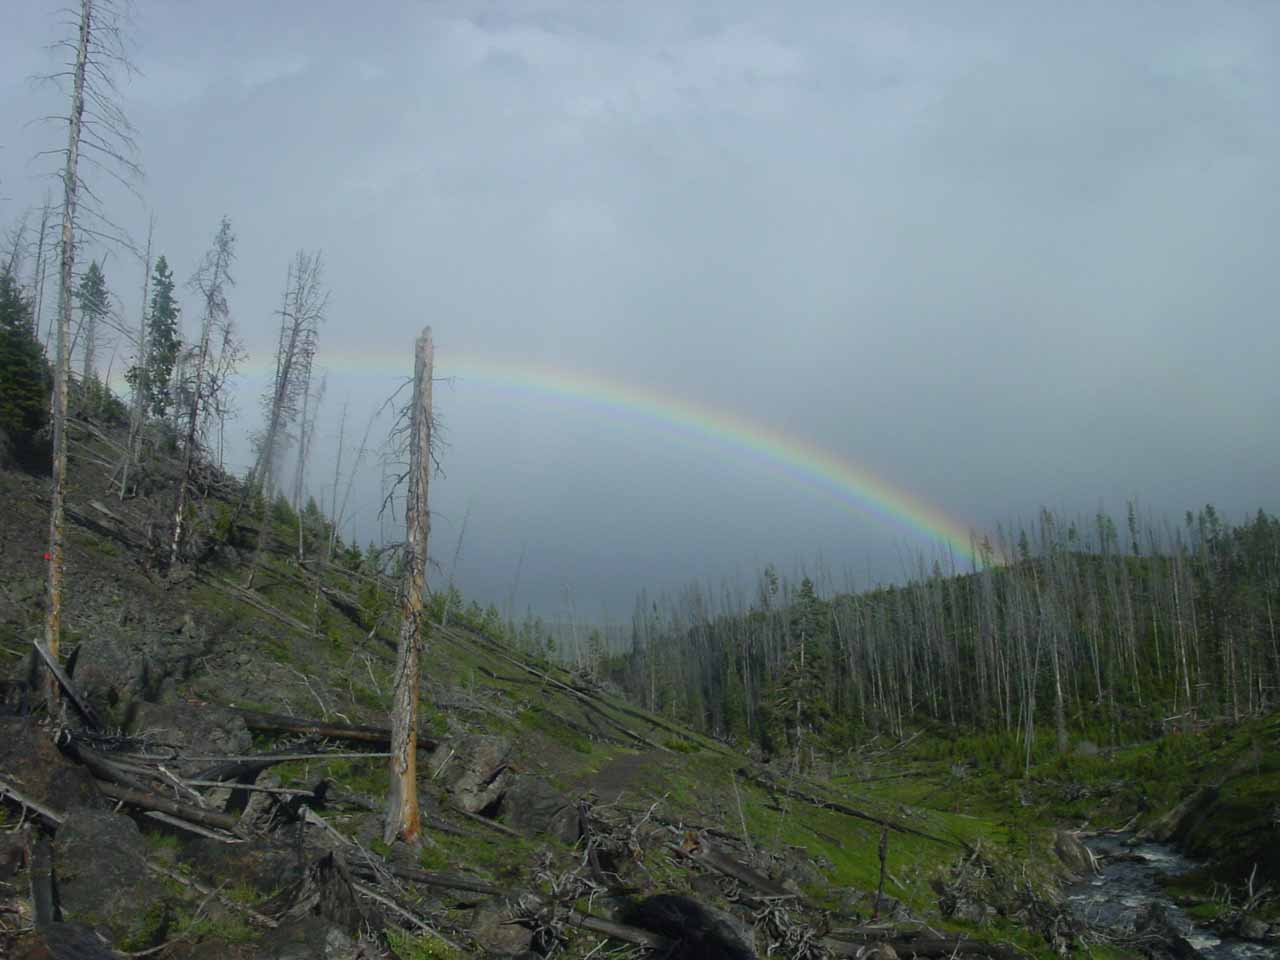 Bold rainbow as seen from the Mystic Falls Trail